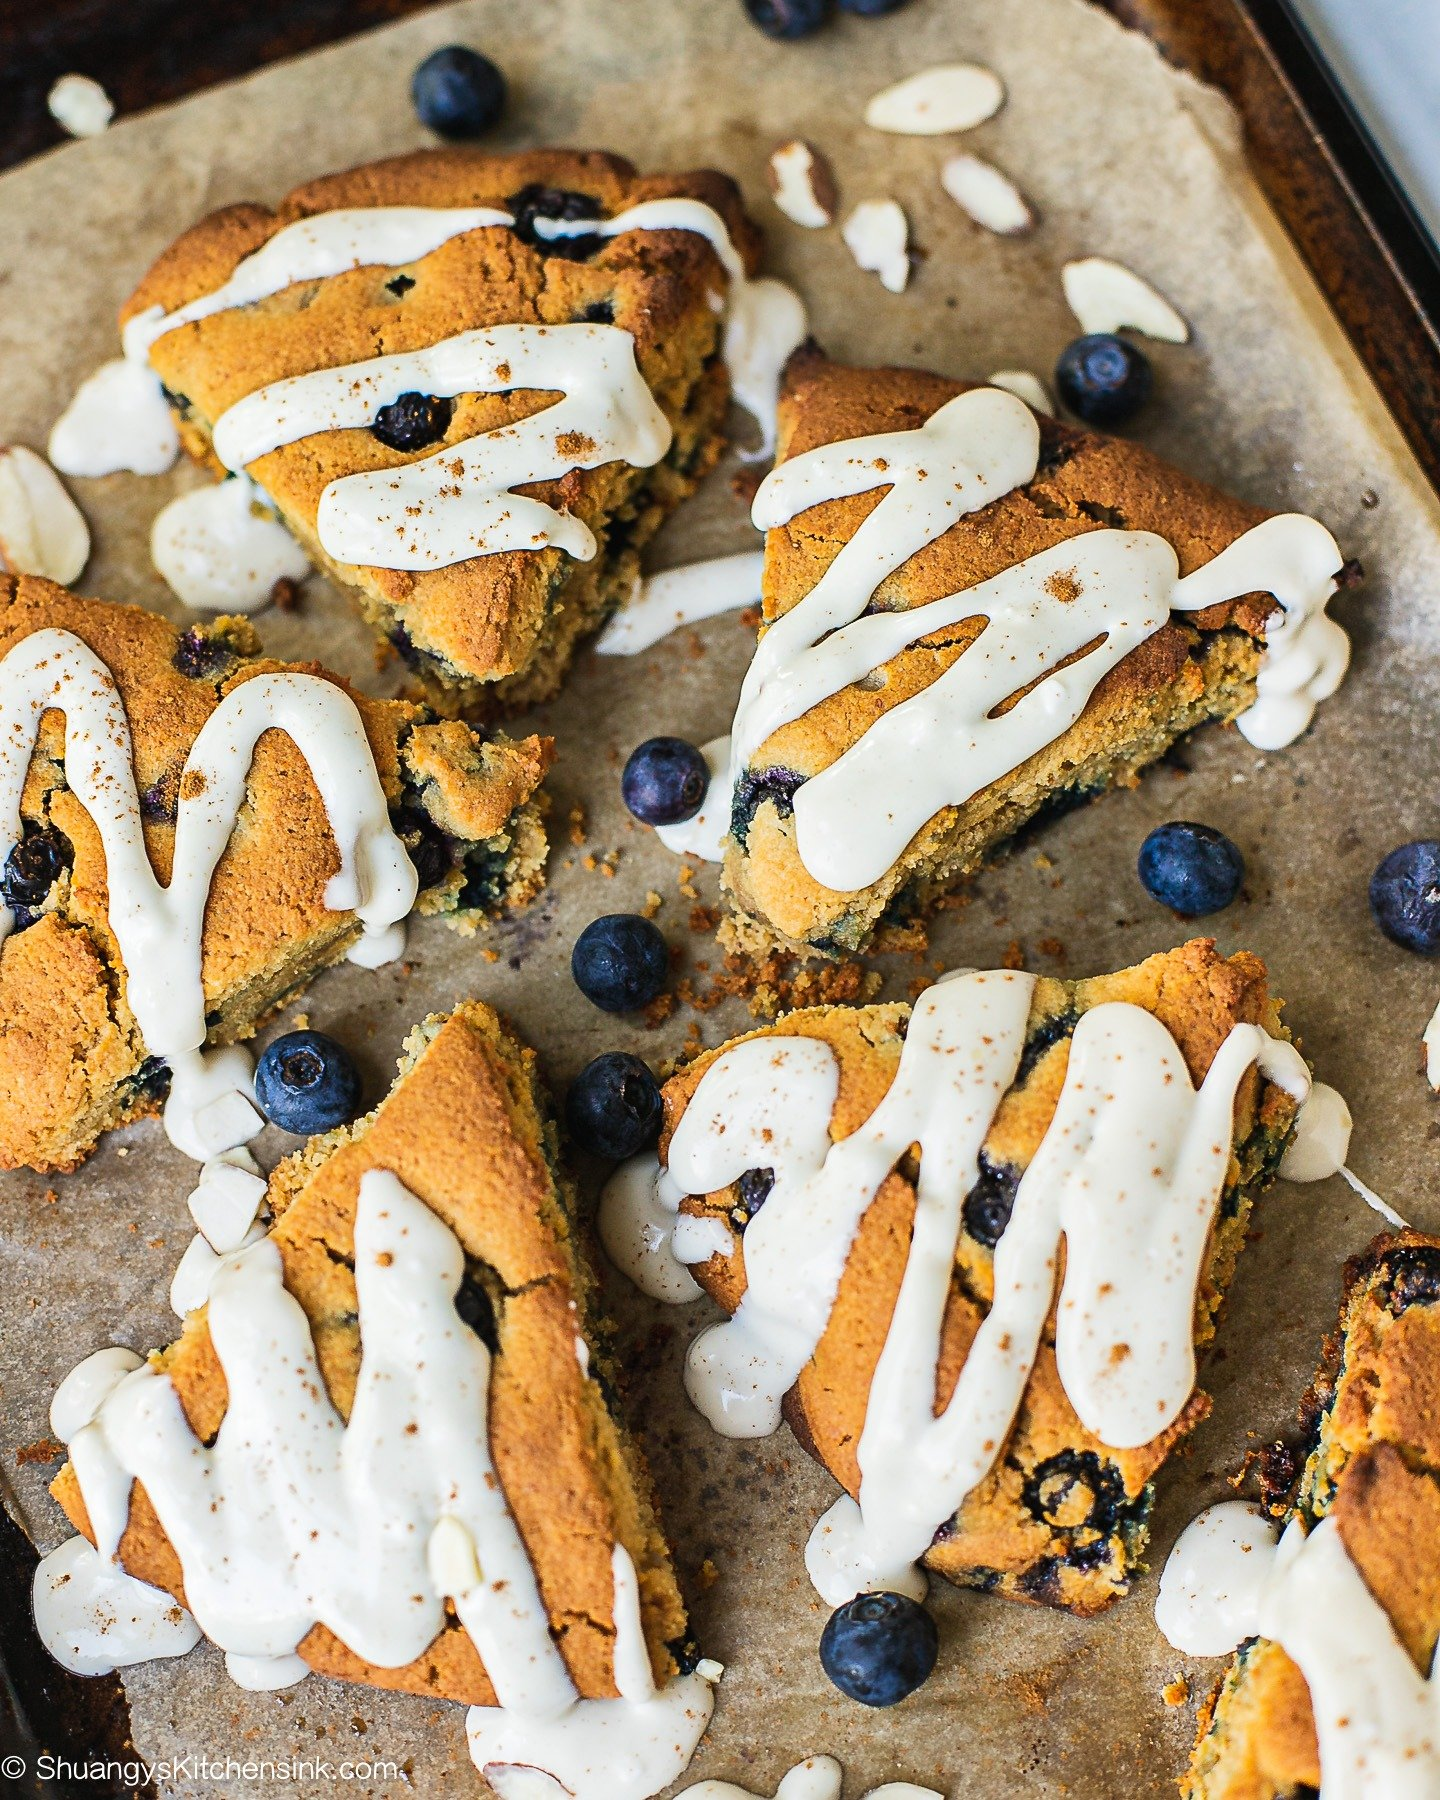 A few paleo blueberry scones with cashew cream cheese frosting. There are a few blueberries and almonds on the side.